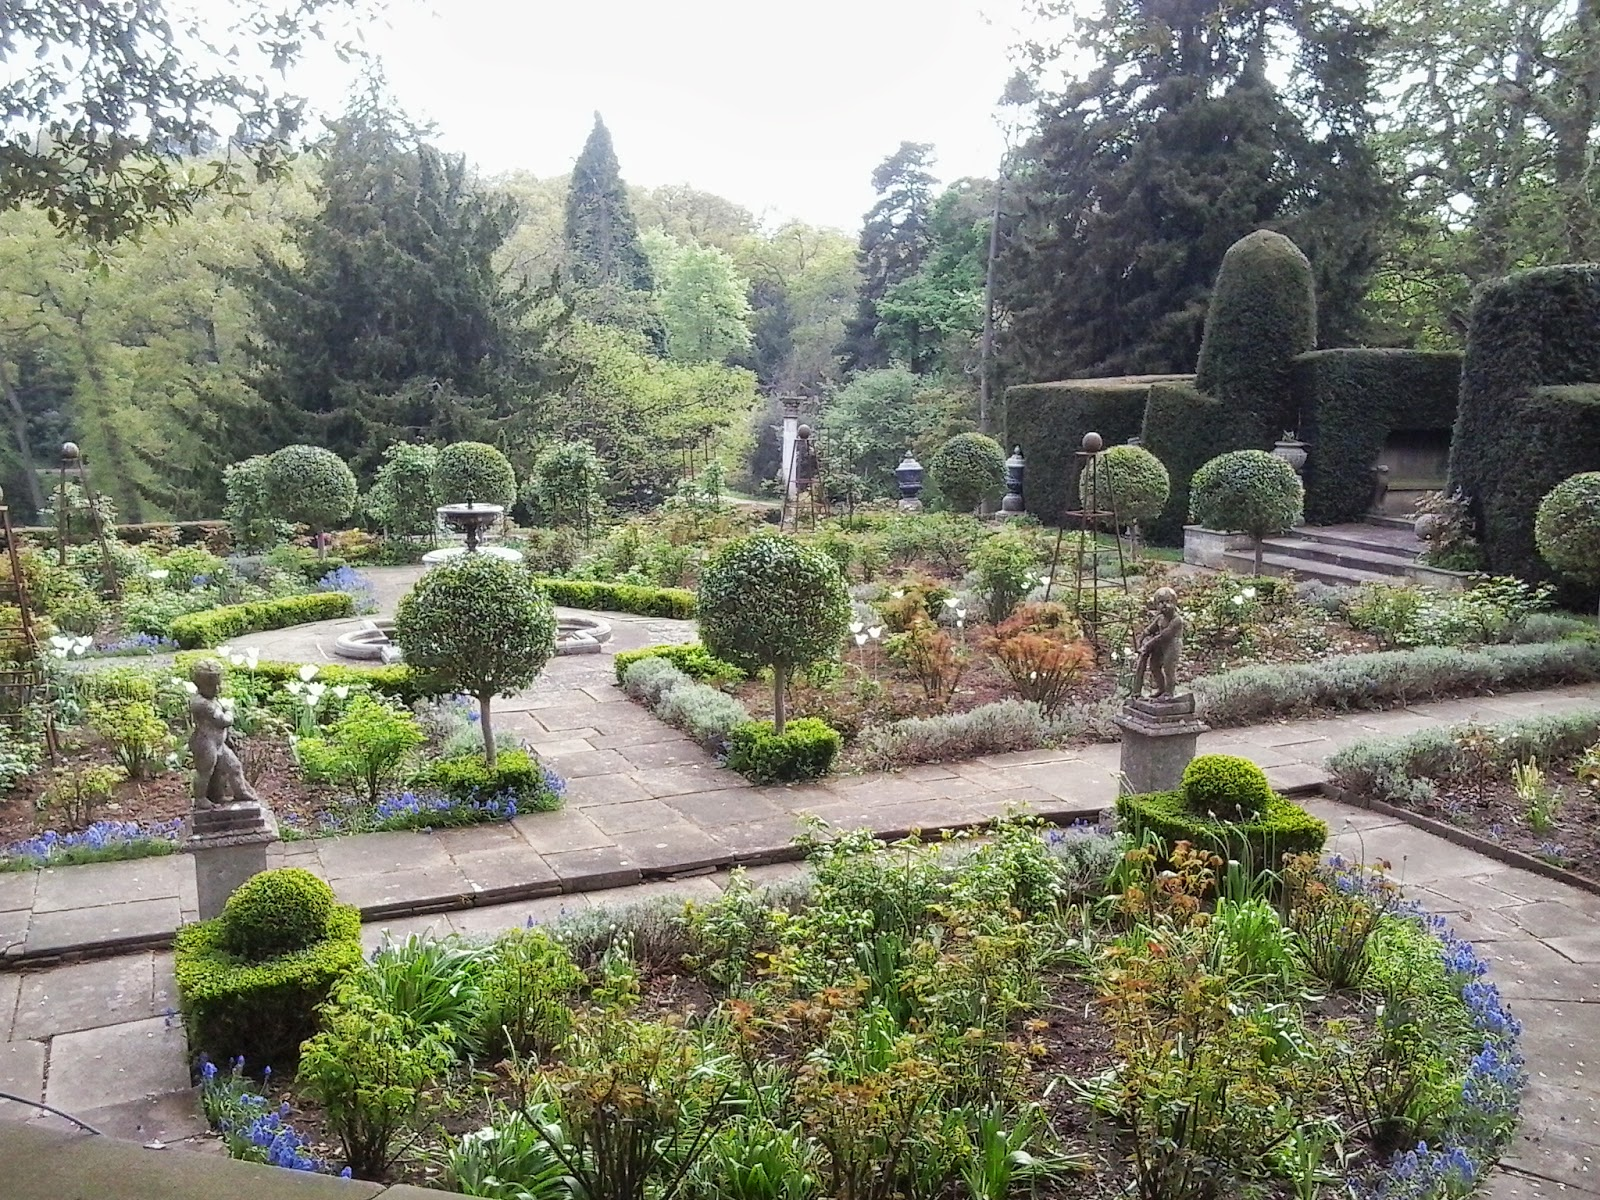 Seductive Dan Community Ltd May  With Remarkable Heritage Tour To Grantham And Belvoir Castle On Sunday  May With Enchanting Wiltshire Garden Centres Also Garden Hair In Addition Inspired Garden Design And Pink Garden Flowers As Well As Tivoli Gardens Soccerway Additionally Spice Garden Borehamwood From Danartscouk With   Remarkable Dan Community Ltd May  With Enchanting Heritage Tour To Grantham And Belvoir Castle On Sunday  May And Seductive Wiltshire Garden Centres Also Garden Hair In Addition Inspired Garden Design From Danartscouk